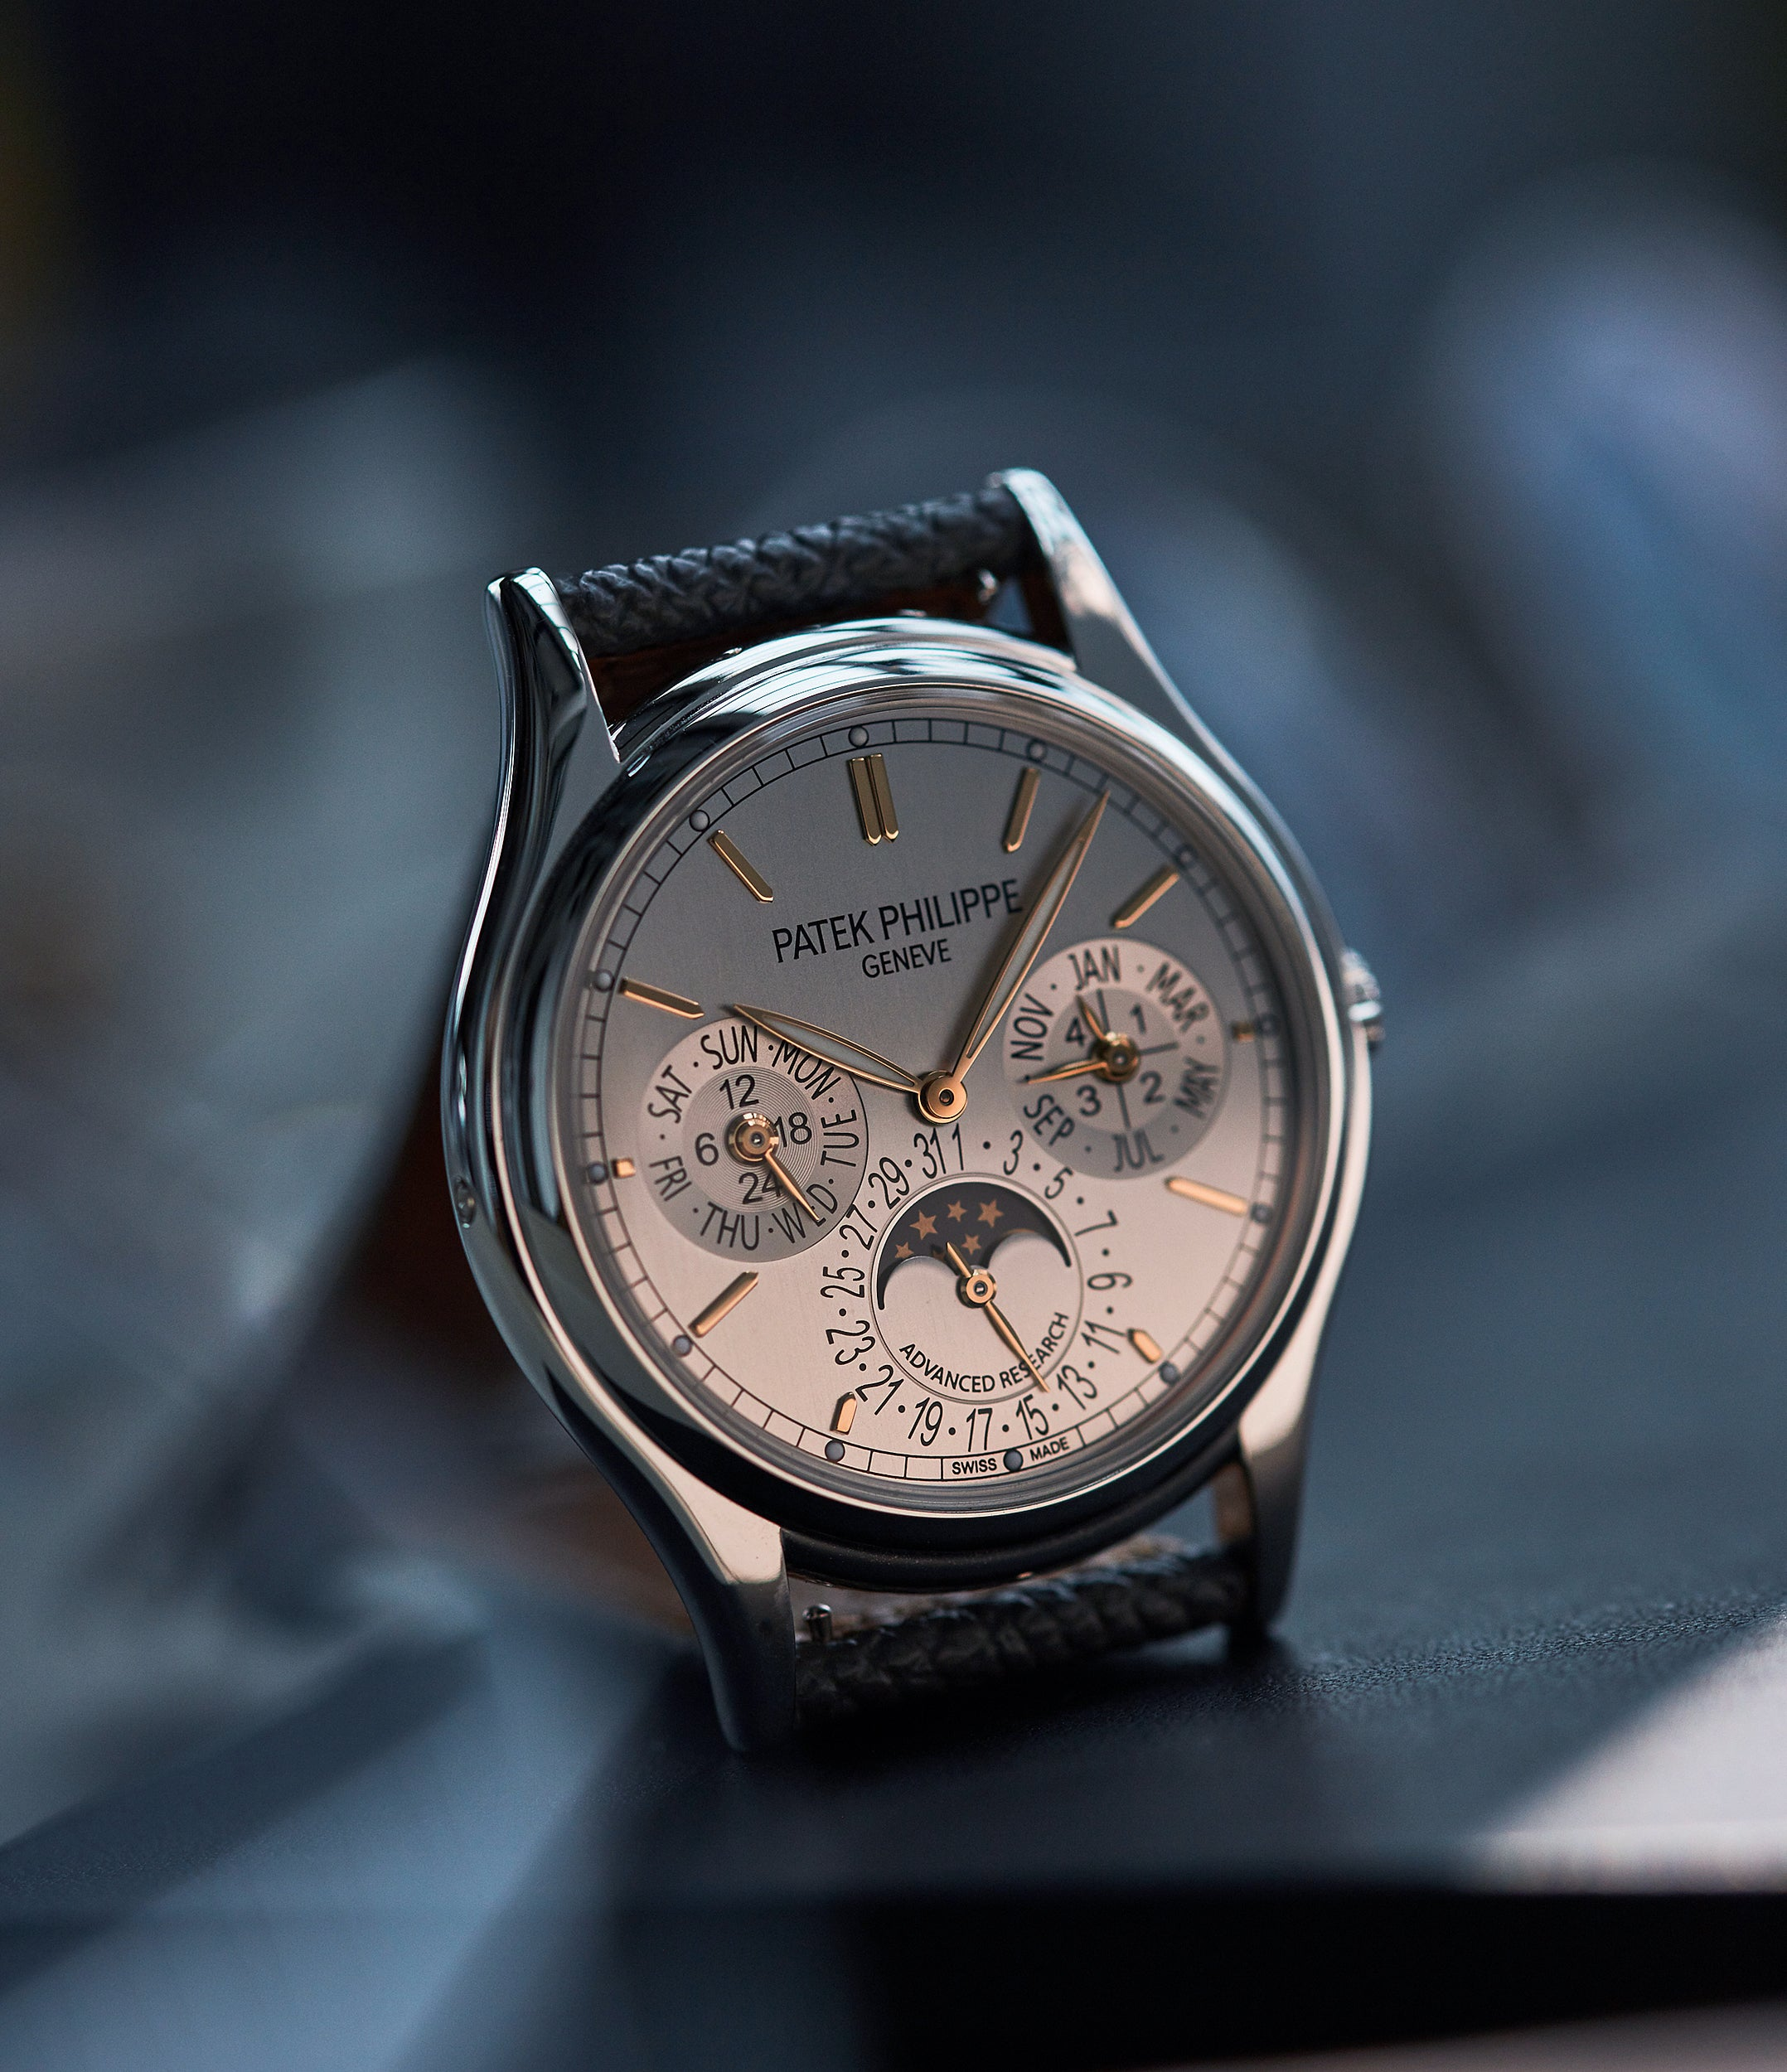 Patek Philippe Advanced Research 5550P watchmaking in times of Crisis A Collected Man London